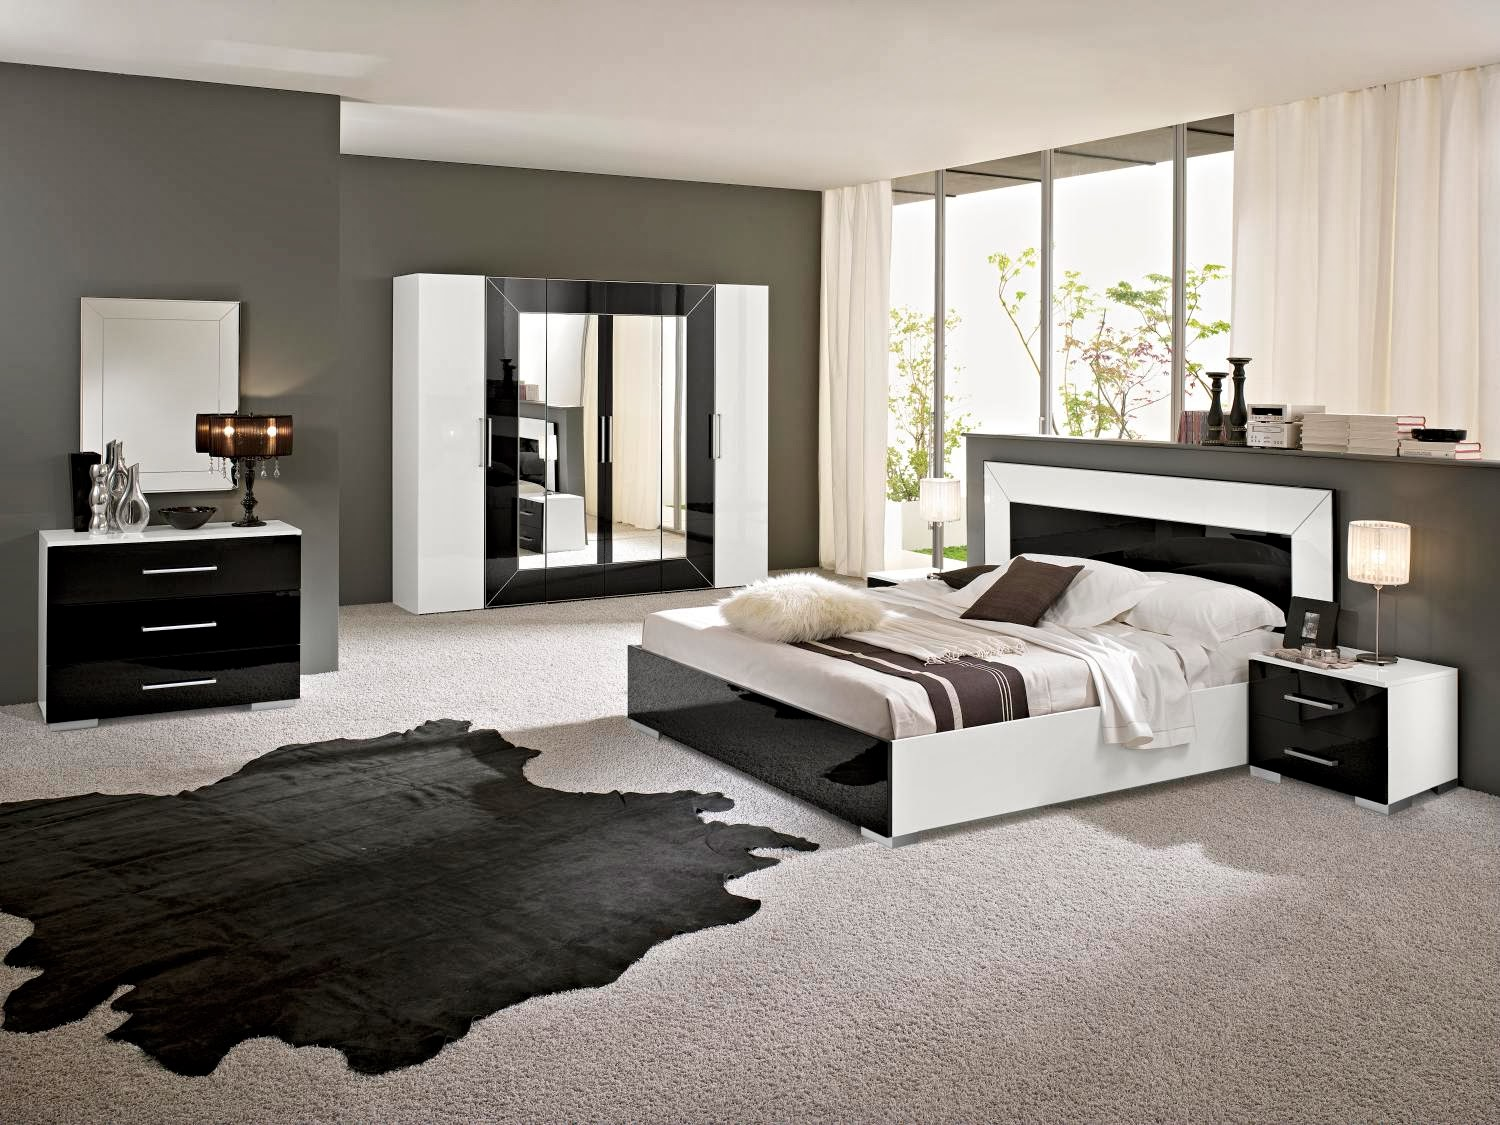 comment decorer sa chambre coucher. Black Bedroom Furniture Sets. Home Design Ideas